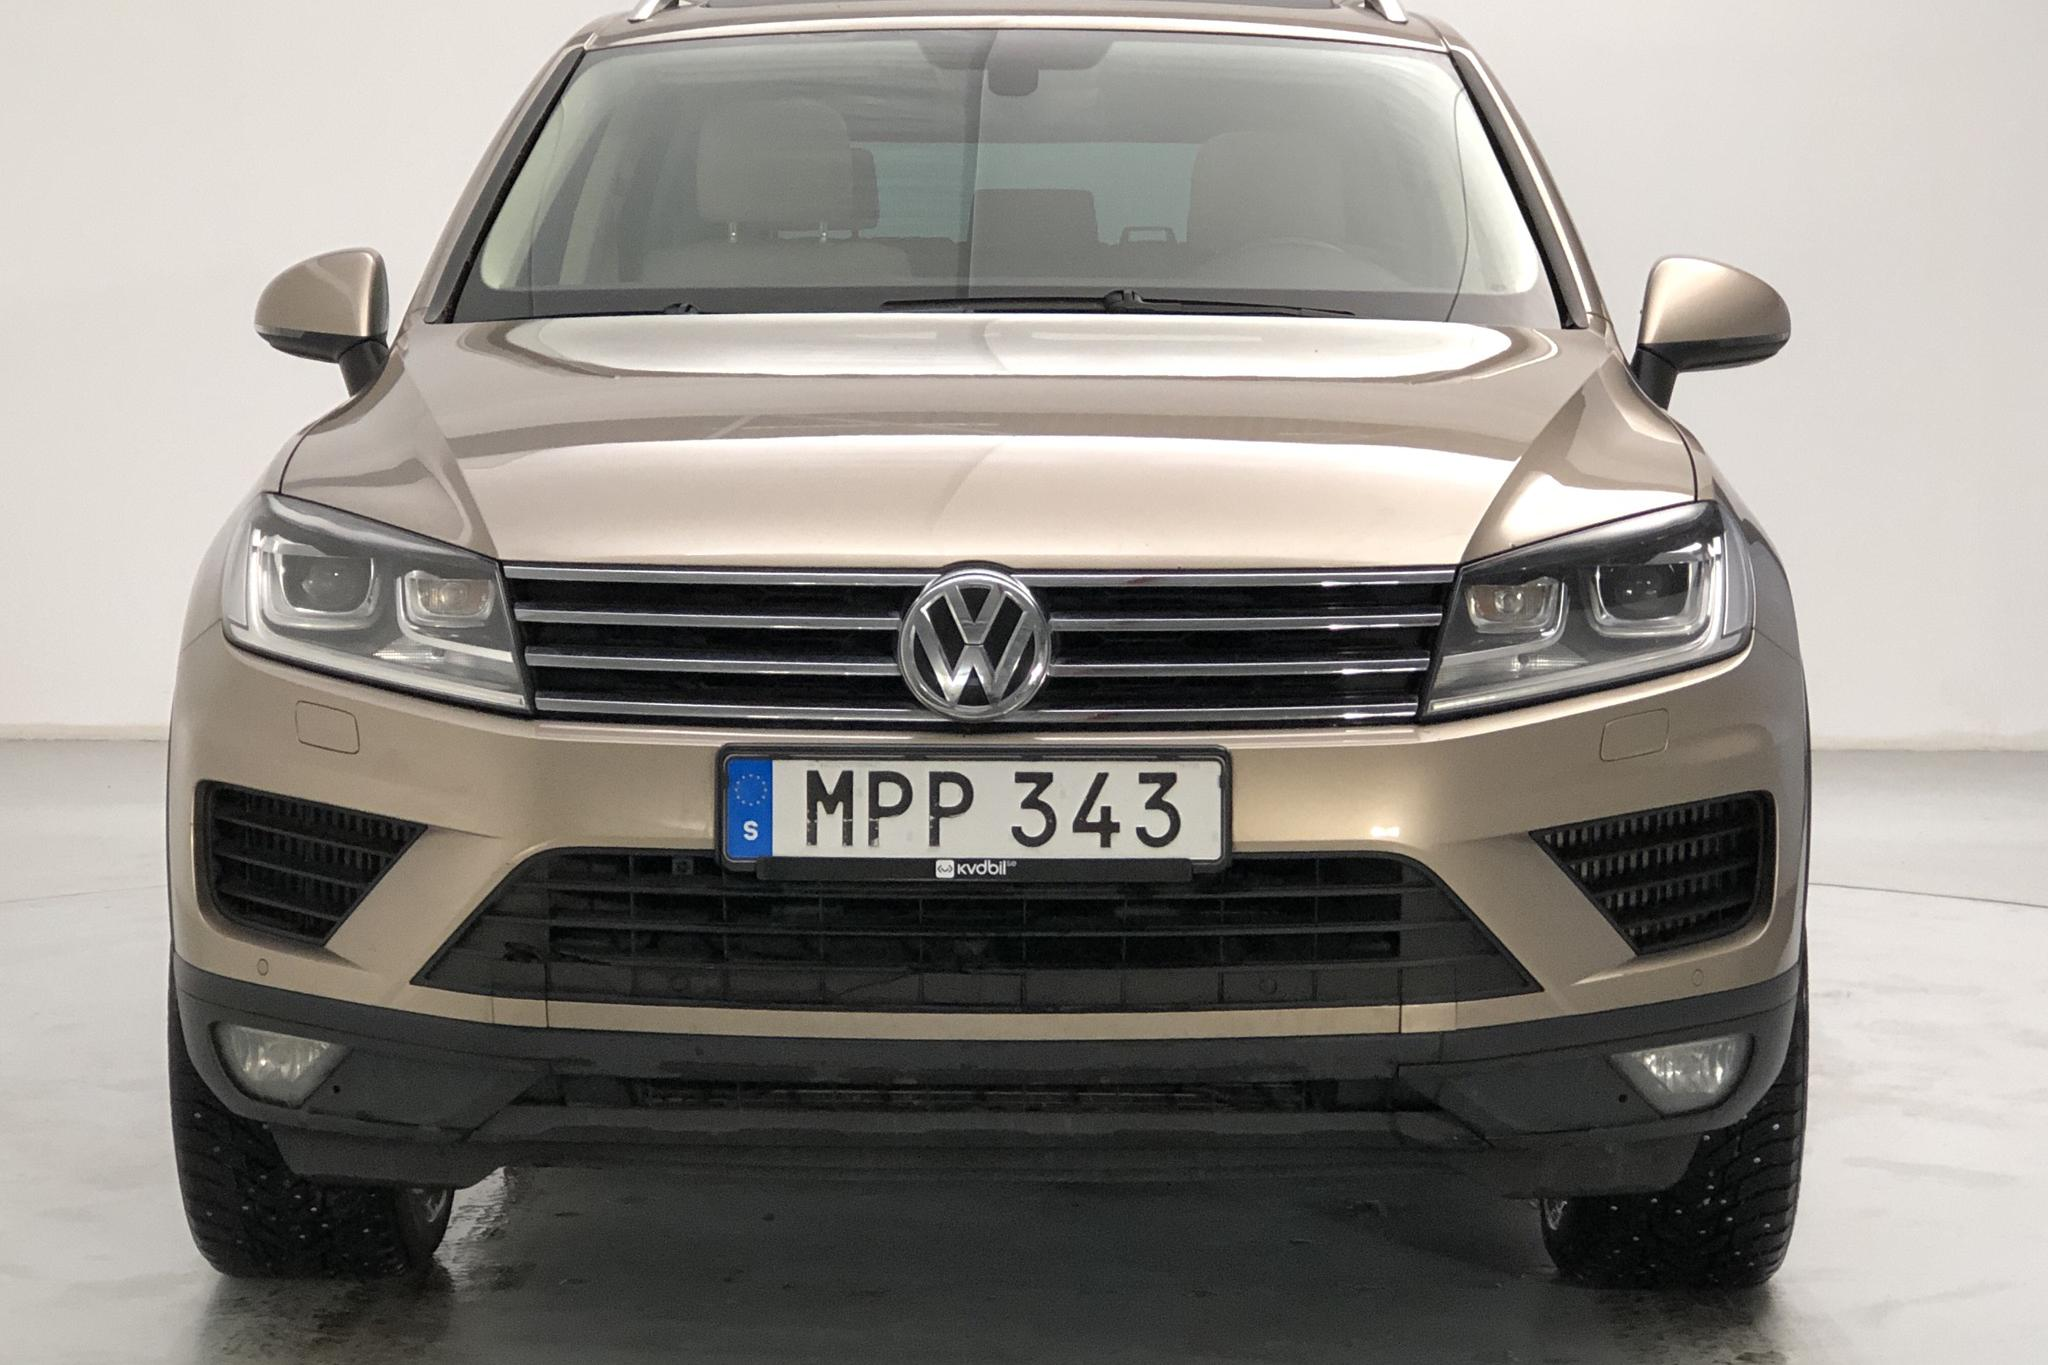 VW Touareg 3.0 TDI BlueMotion Technology (262hk) - 9 776 mil - Automat - Light Brown - 2015